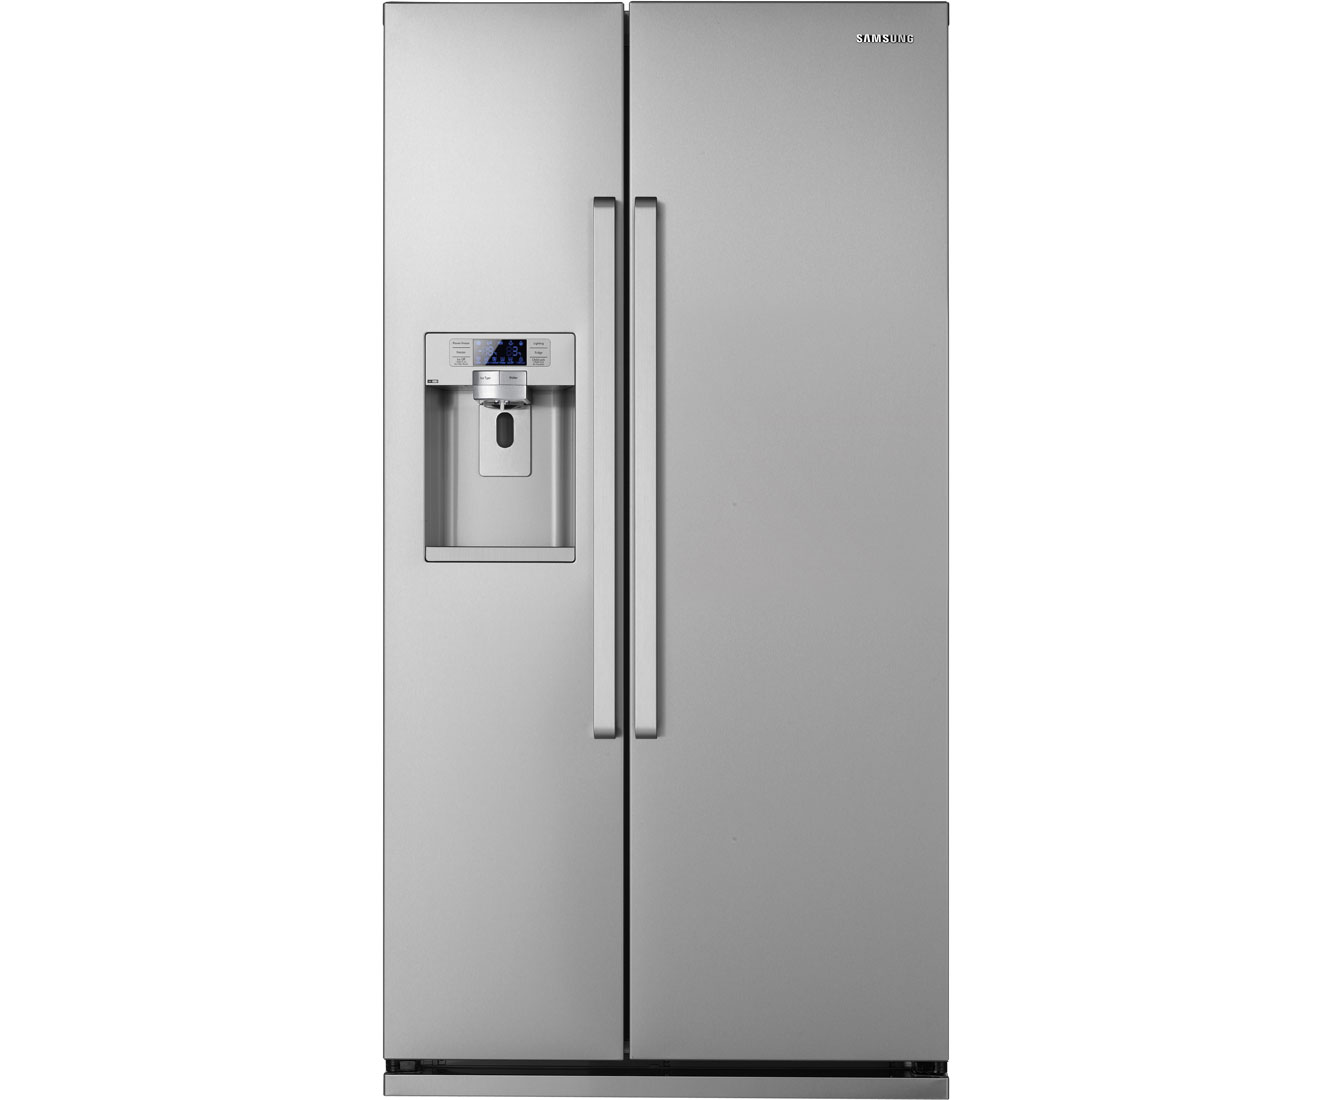 Samsung GSeries RSG5UCRS Free Standing American Fridge Freezer in Stainless Steel